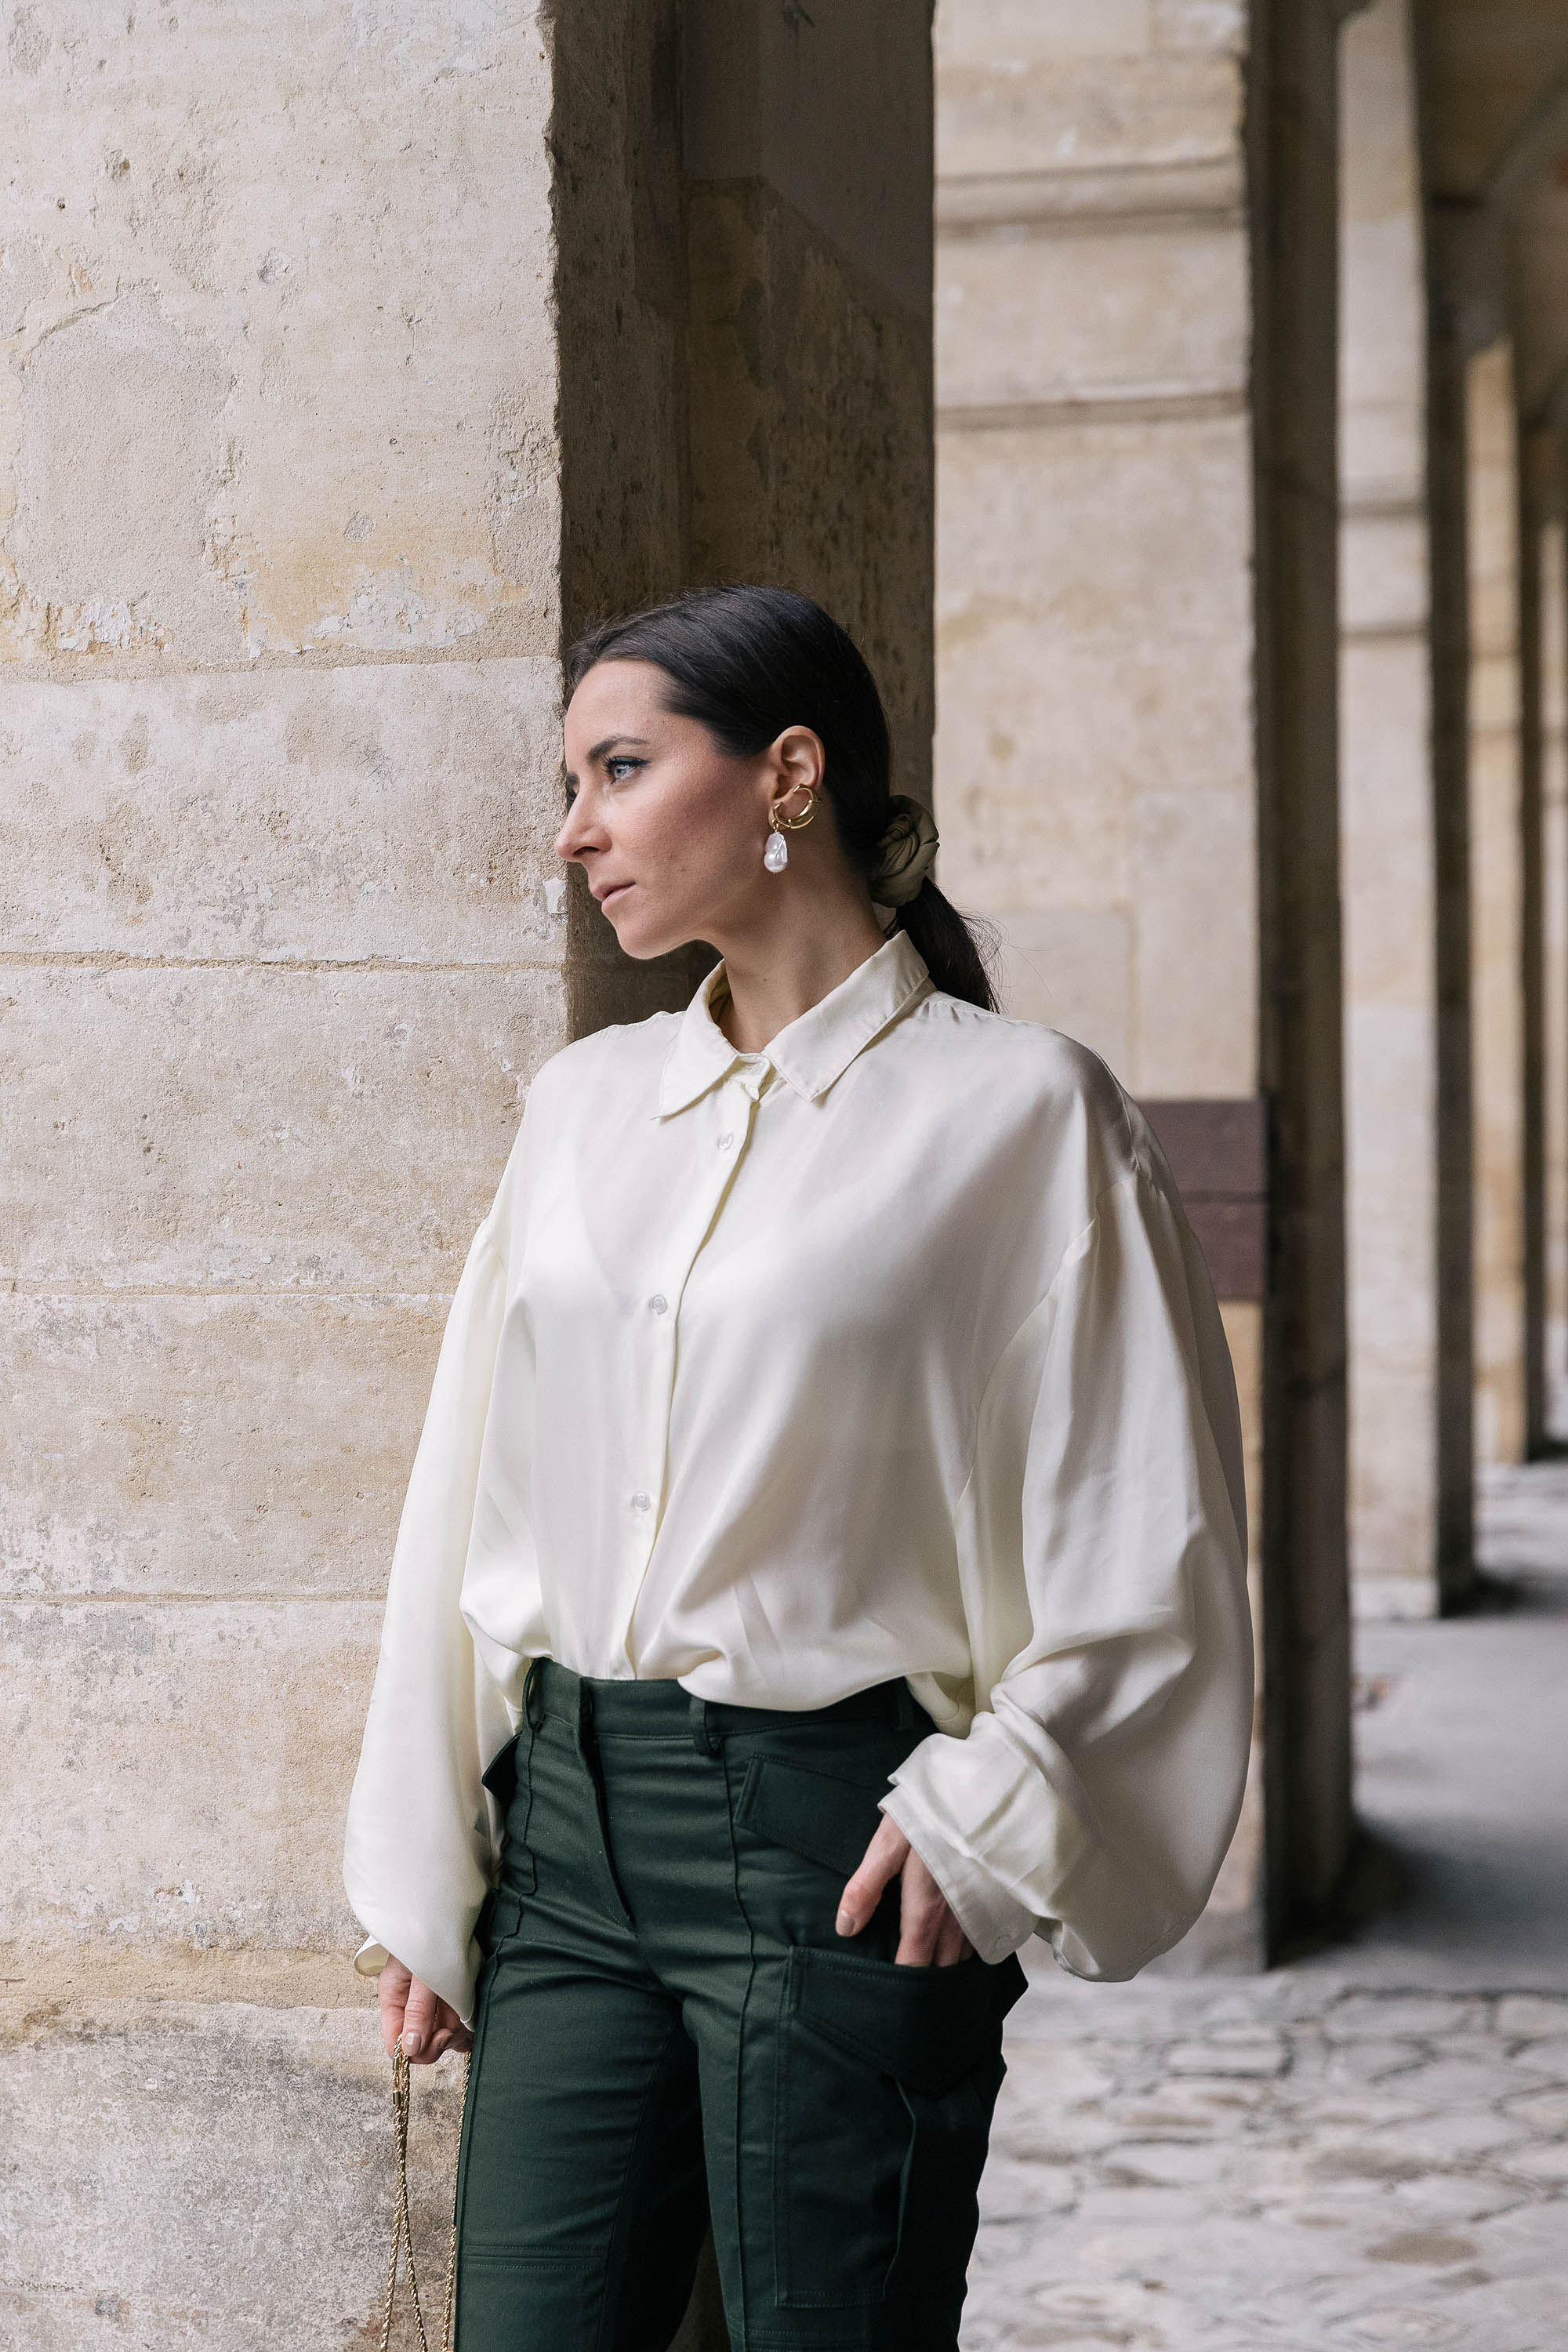 How to style the cargo pants for a business meeting - Julia Comil interviewed by Farfetch - Cargo pants by Rokh - cropped trousers rokh